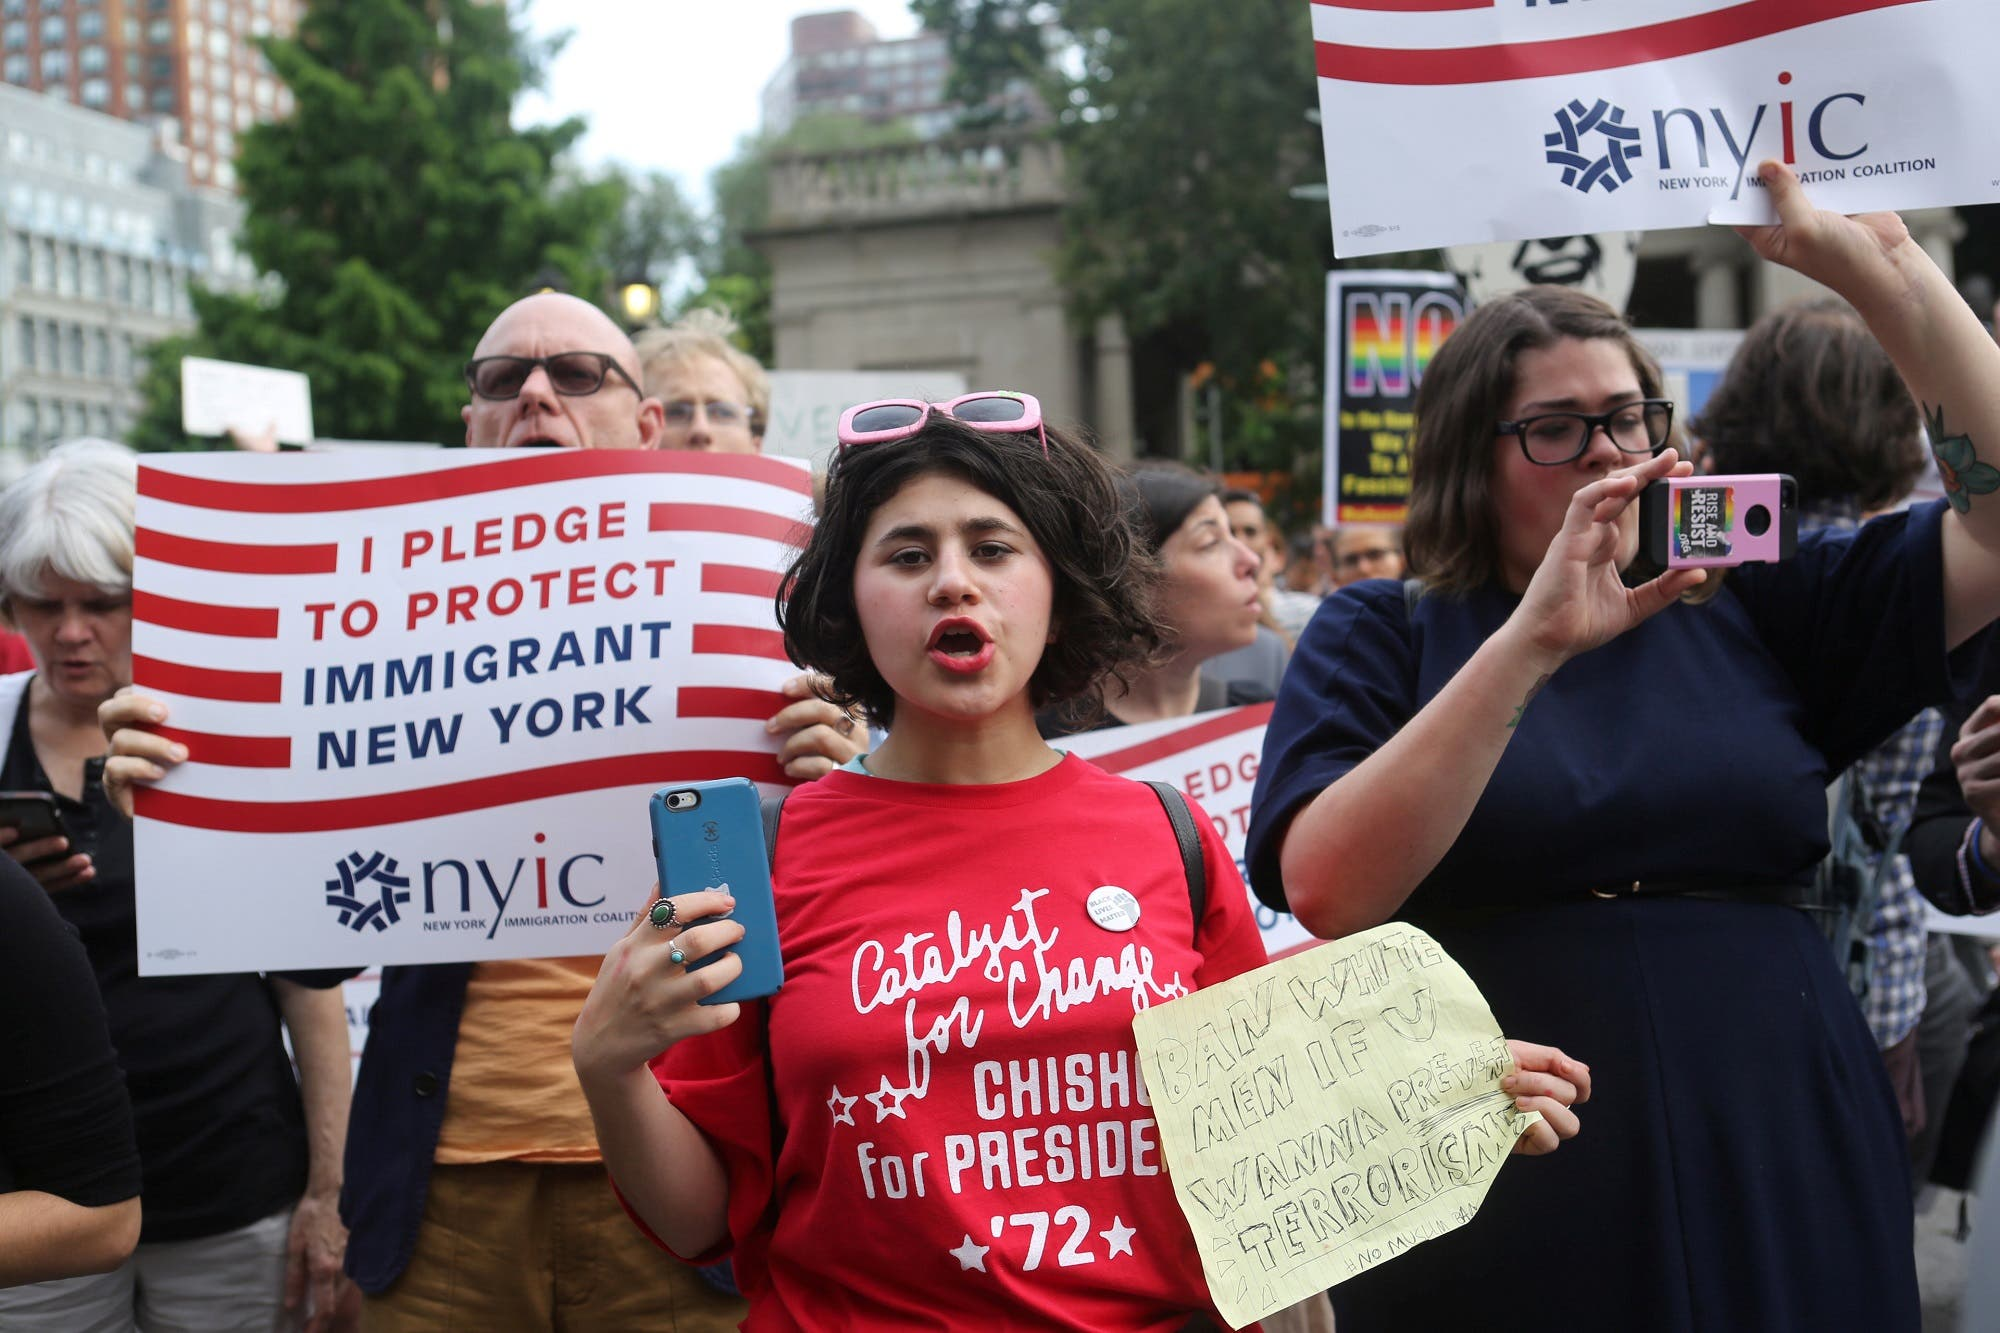 Protesters chant slogans against Trump's limited travel ban, approved by the US Supreme Court, in New York City, on June 29, 2017. (Reuters)